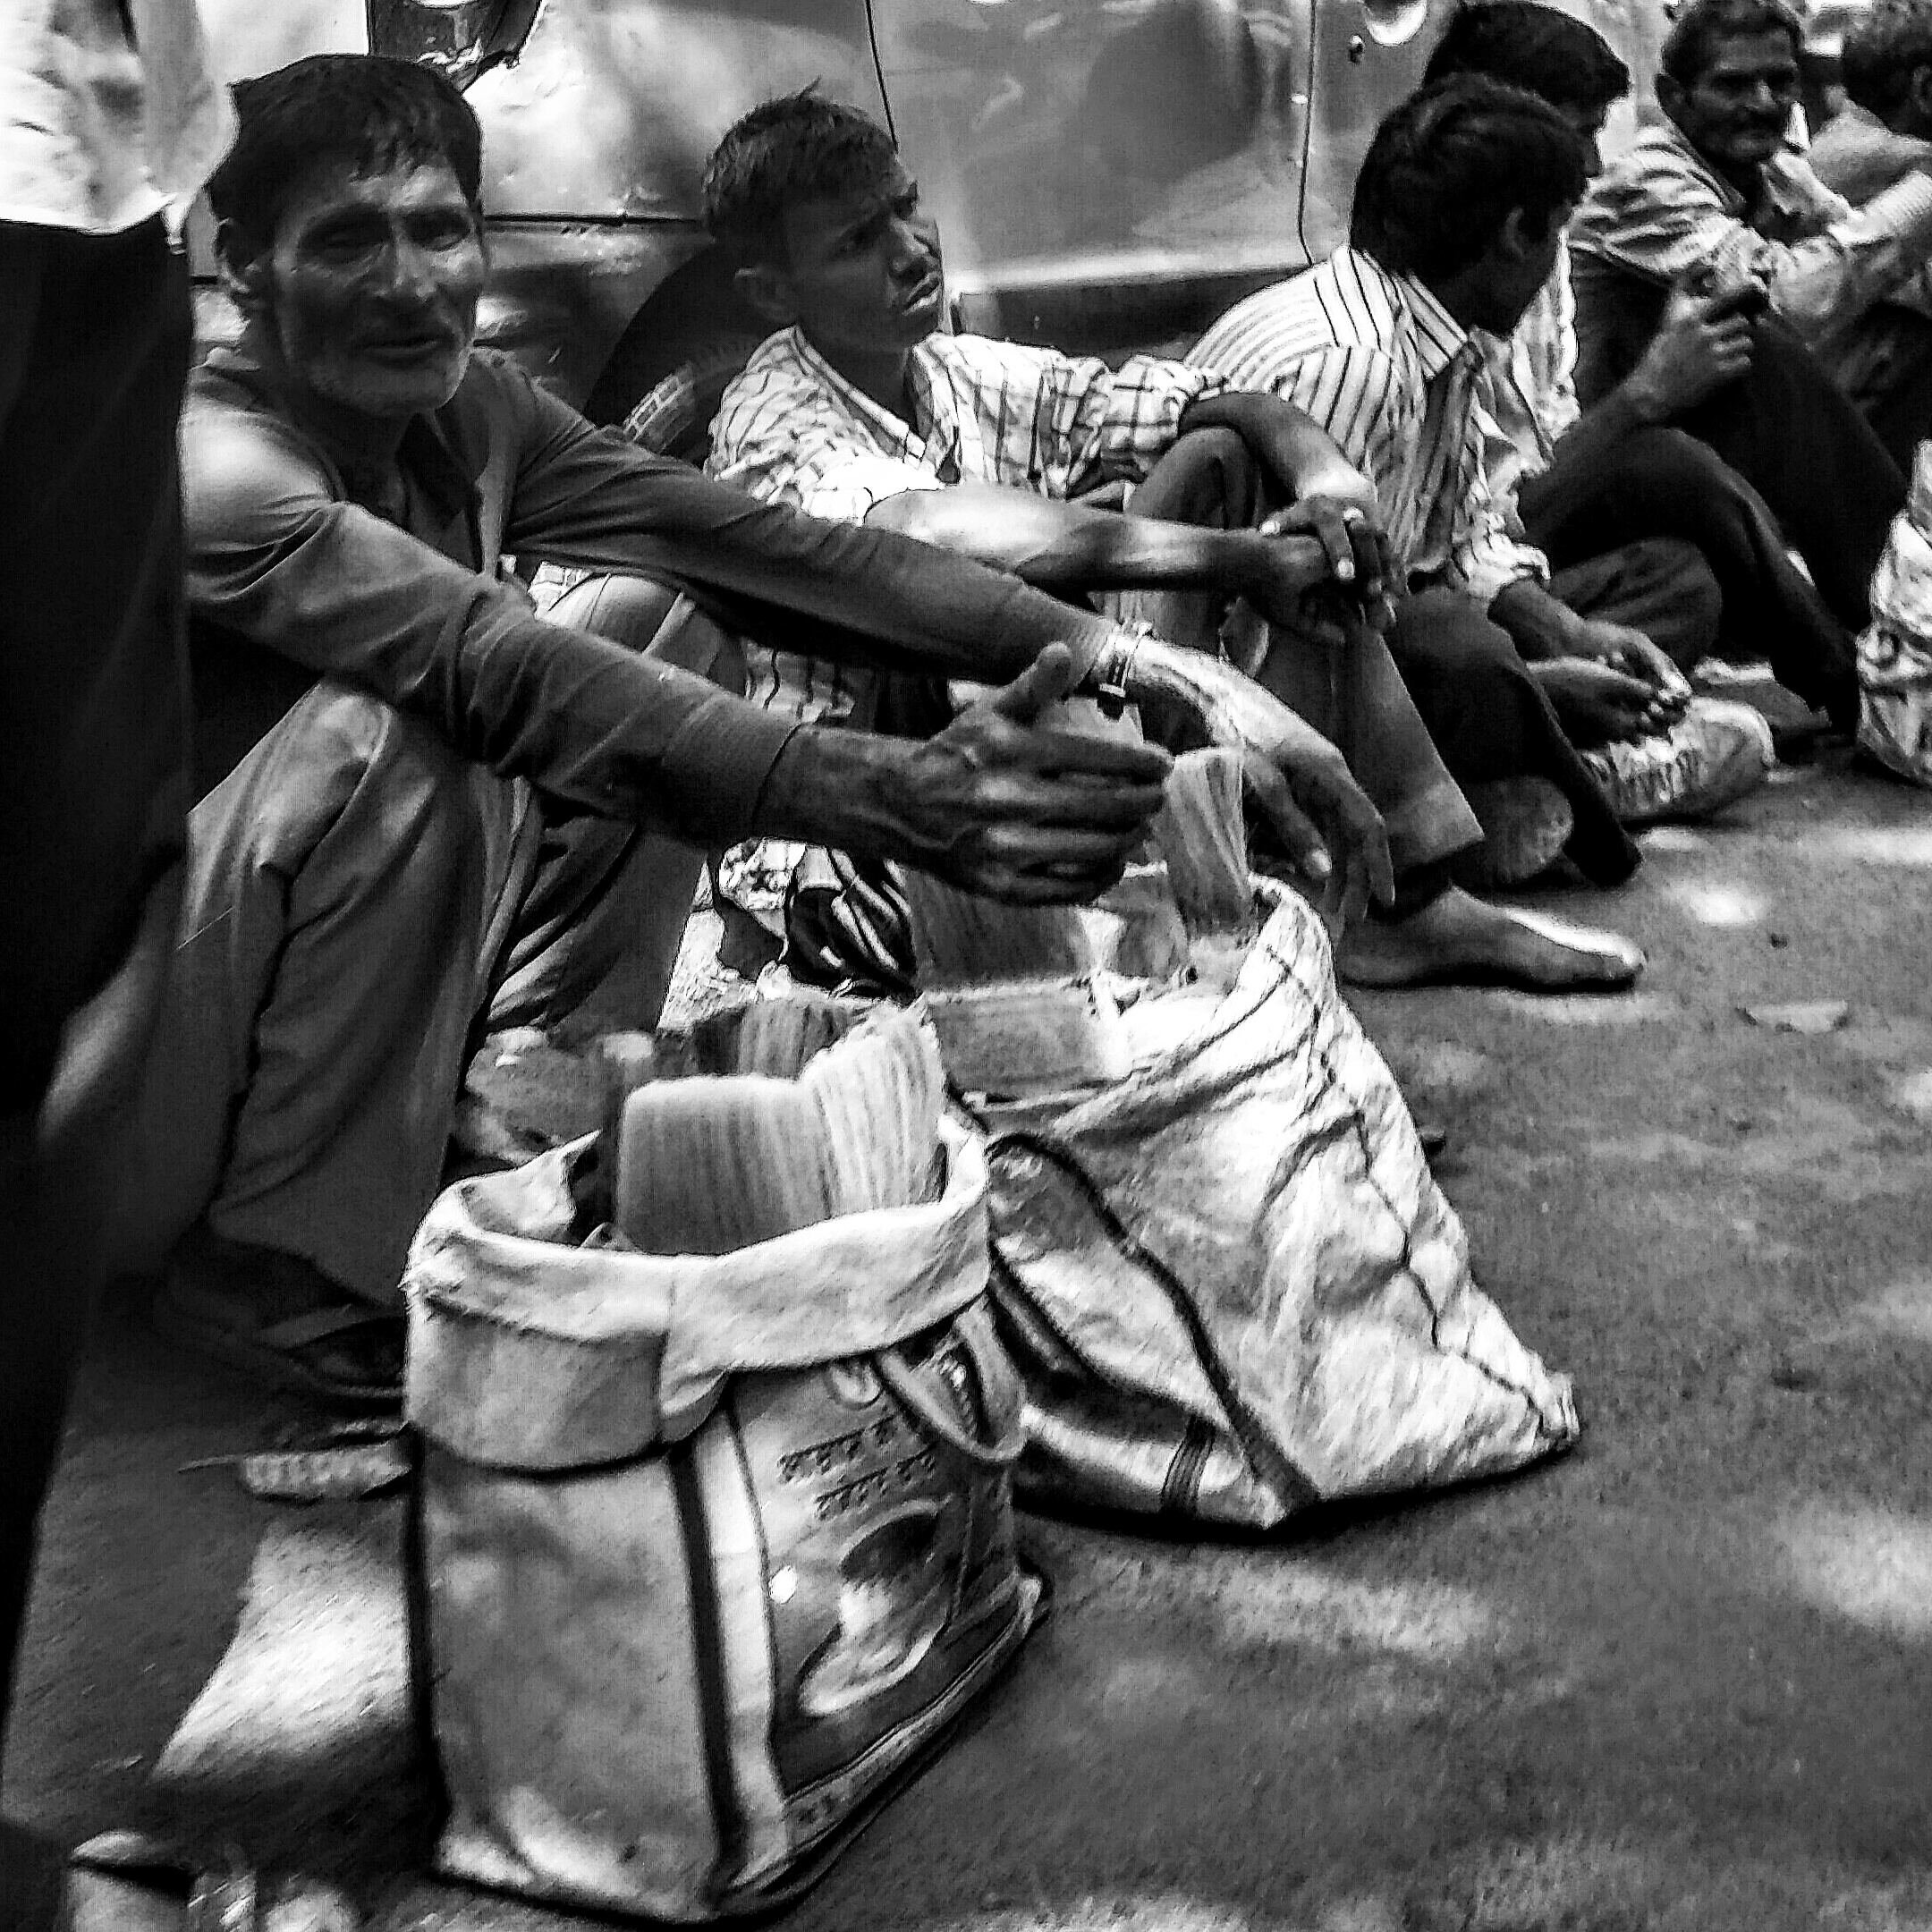 Another group of daily wage labourers wait in the sun, hoping for work. While most of them get hired on daily basis, some of them hang around for hours without any opportunity